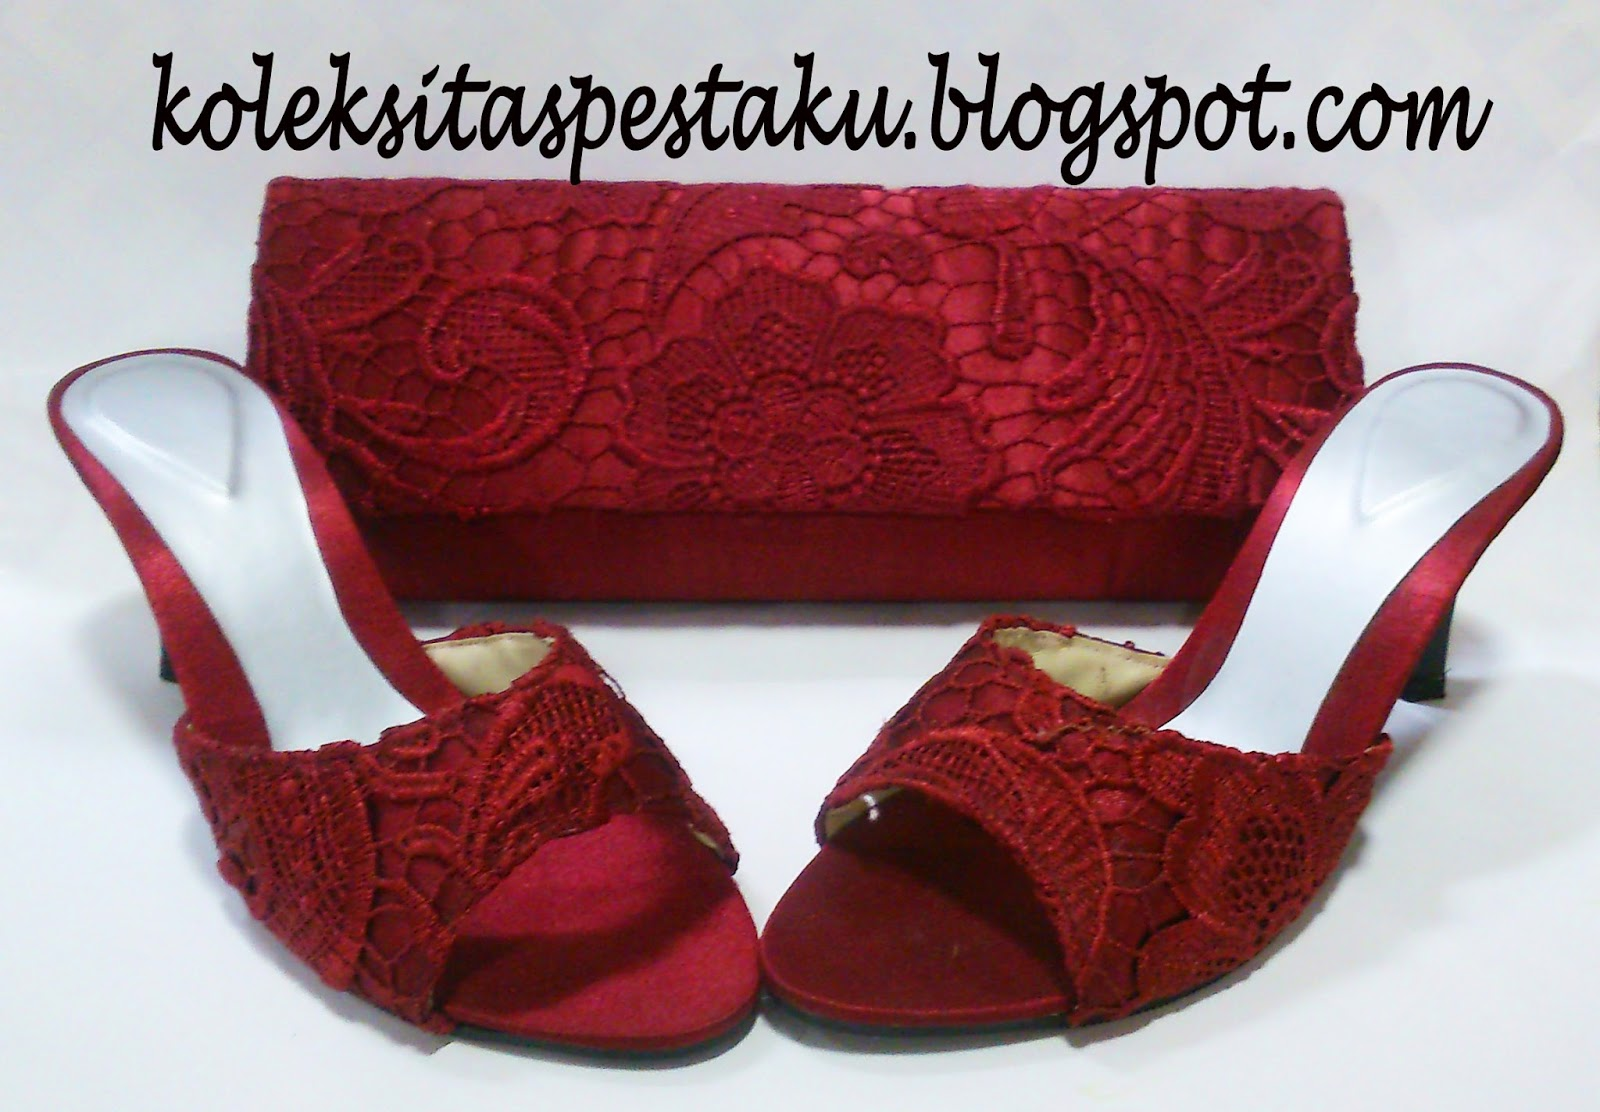 Tas Pesta Clutch Bag Slop Matching Maroon Tile Bunga Timbul